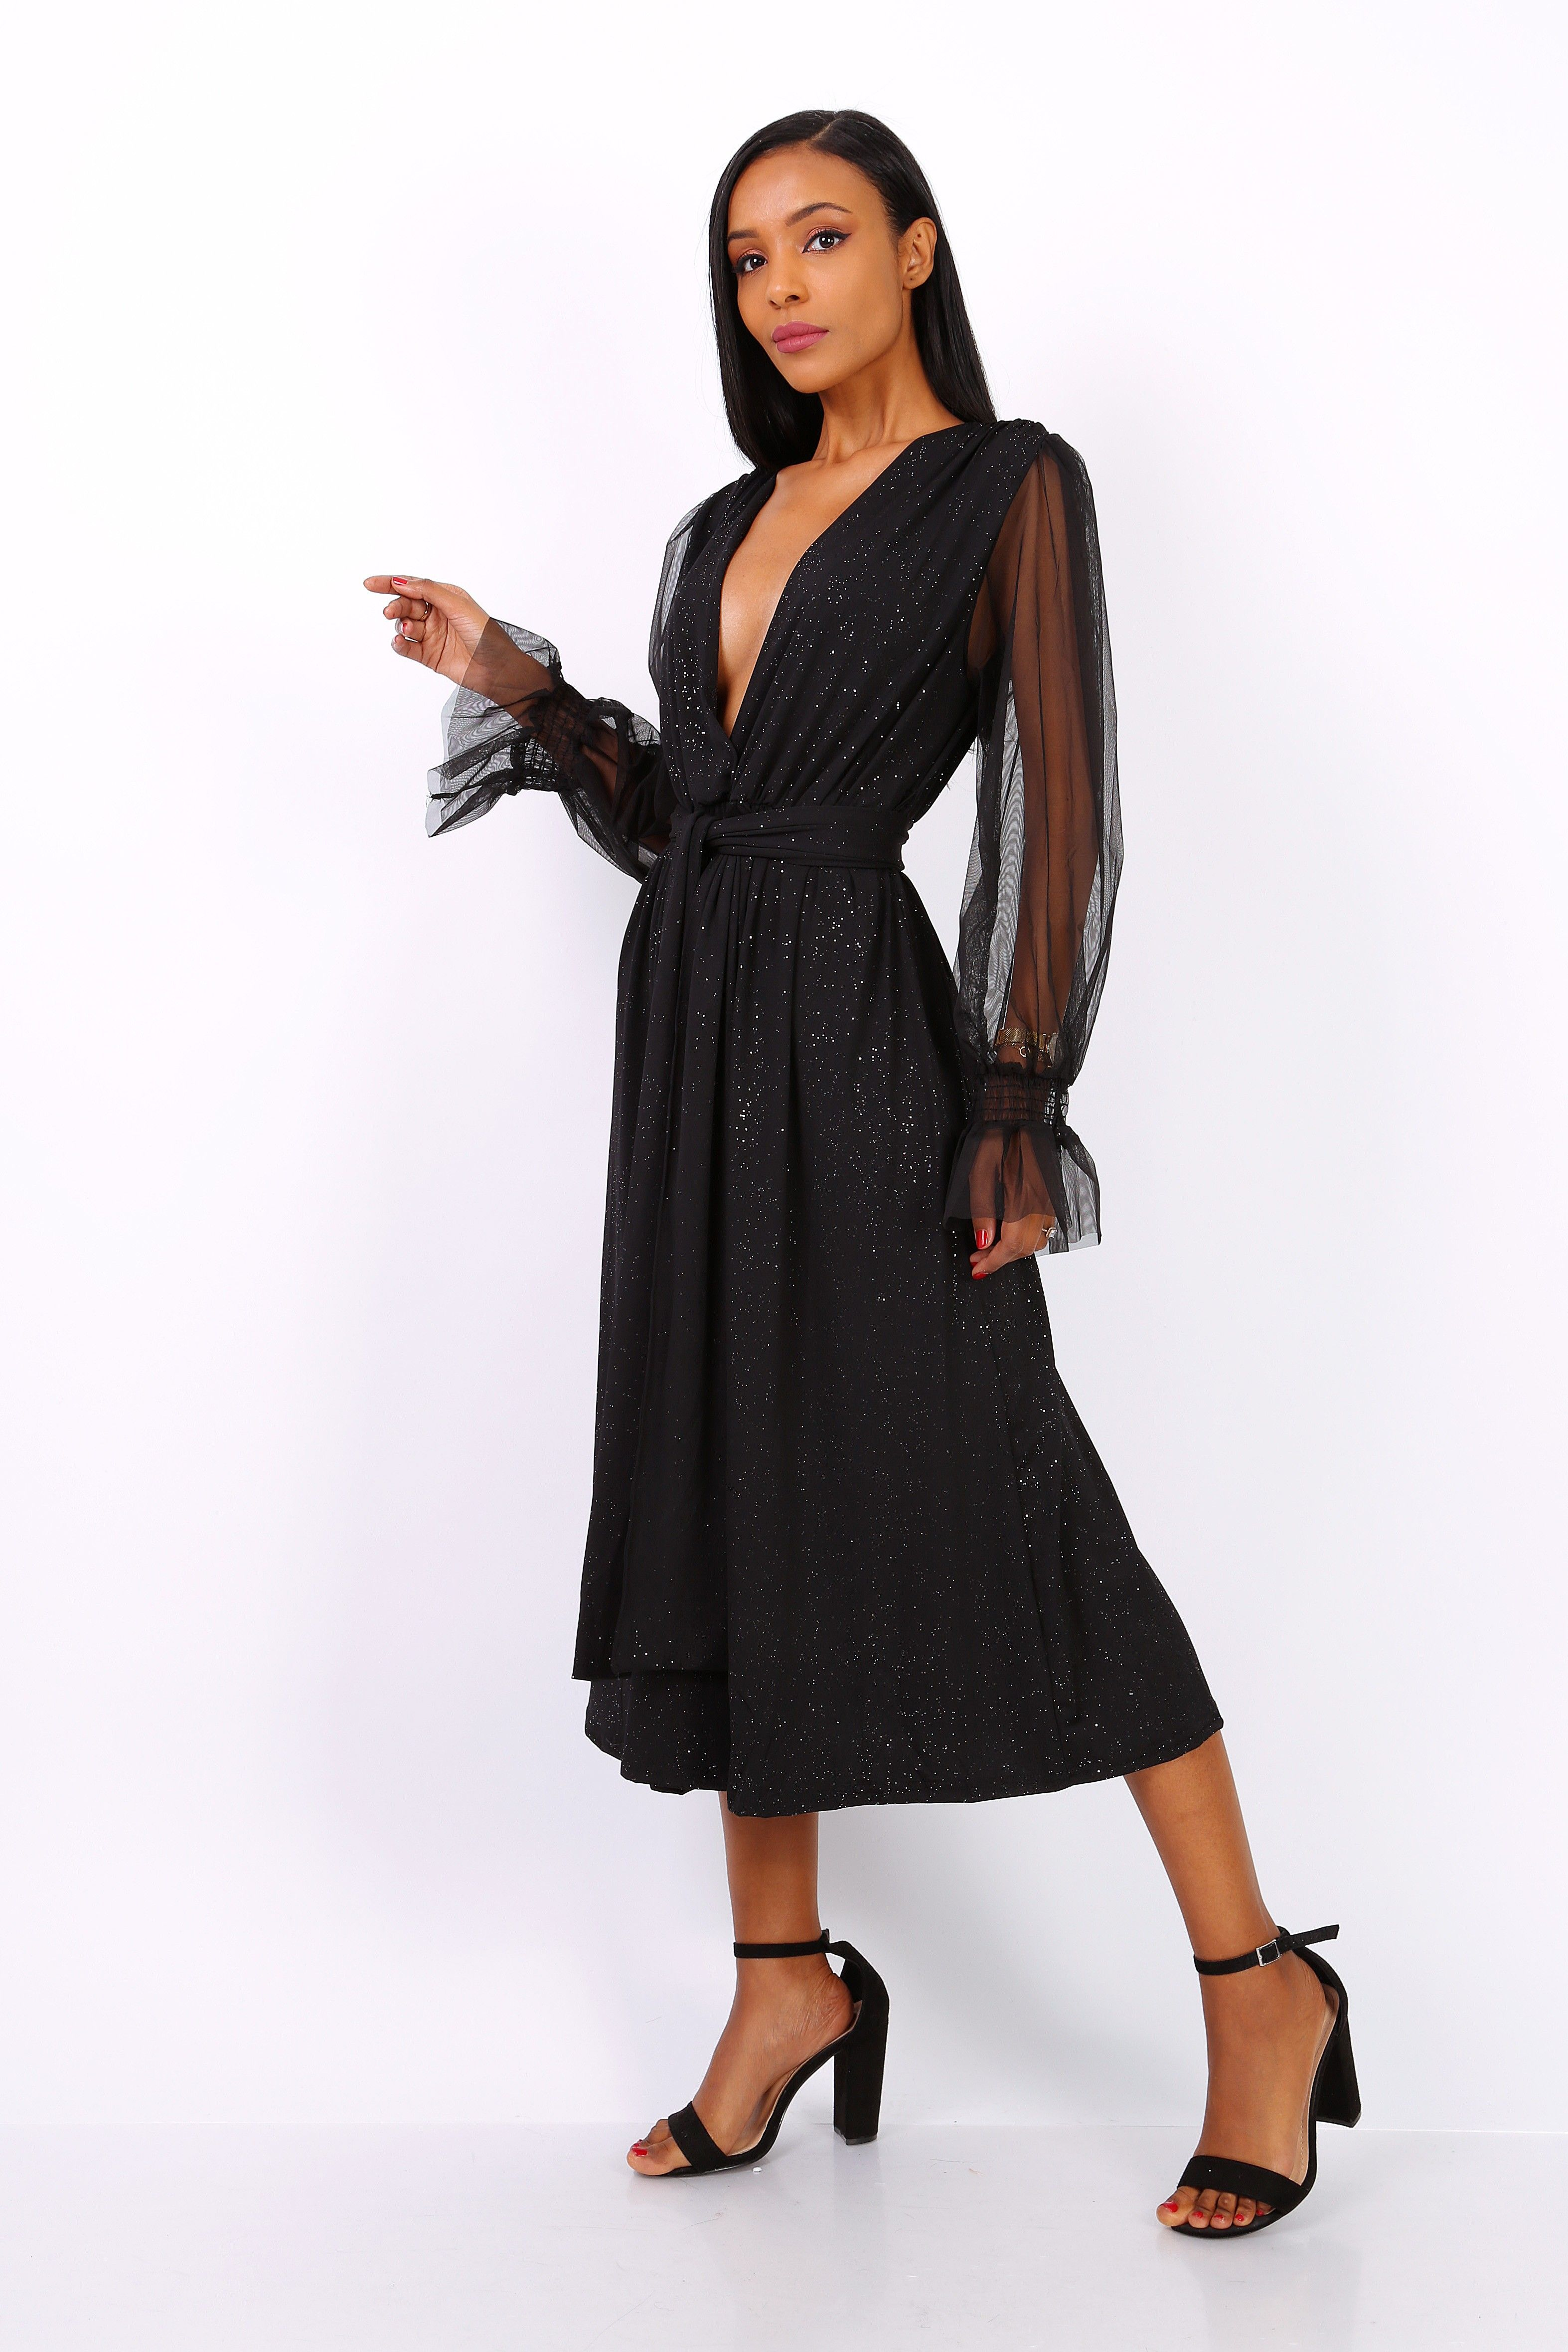 Black Belted Dress with Glitter Fabric & Sheer Sleeves S